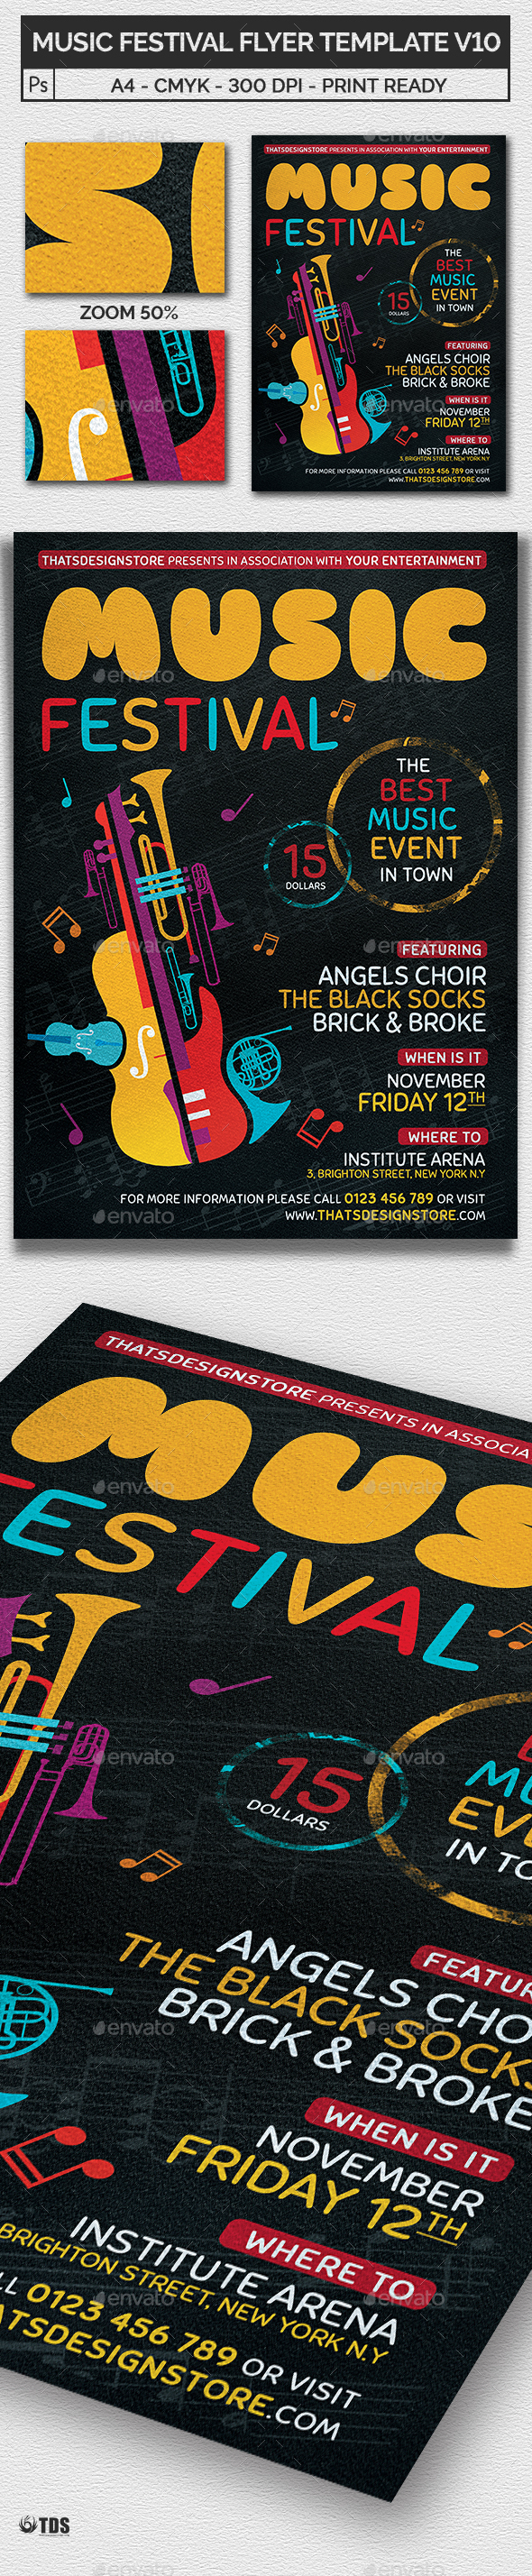 Music Festival Flyer Template V10 - Concerts Events